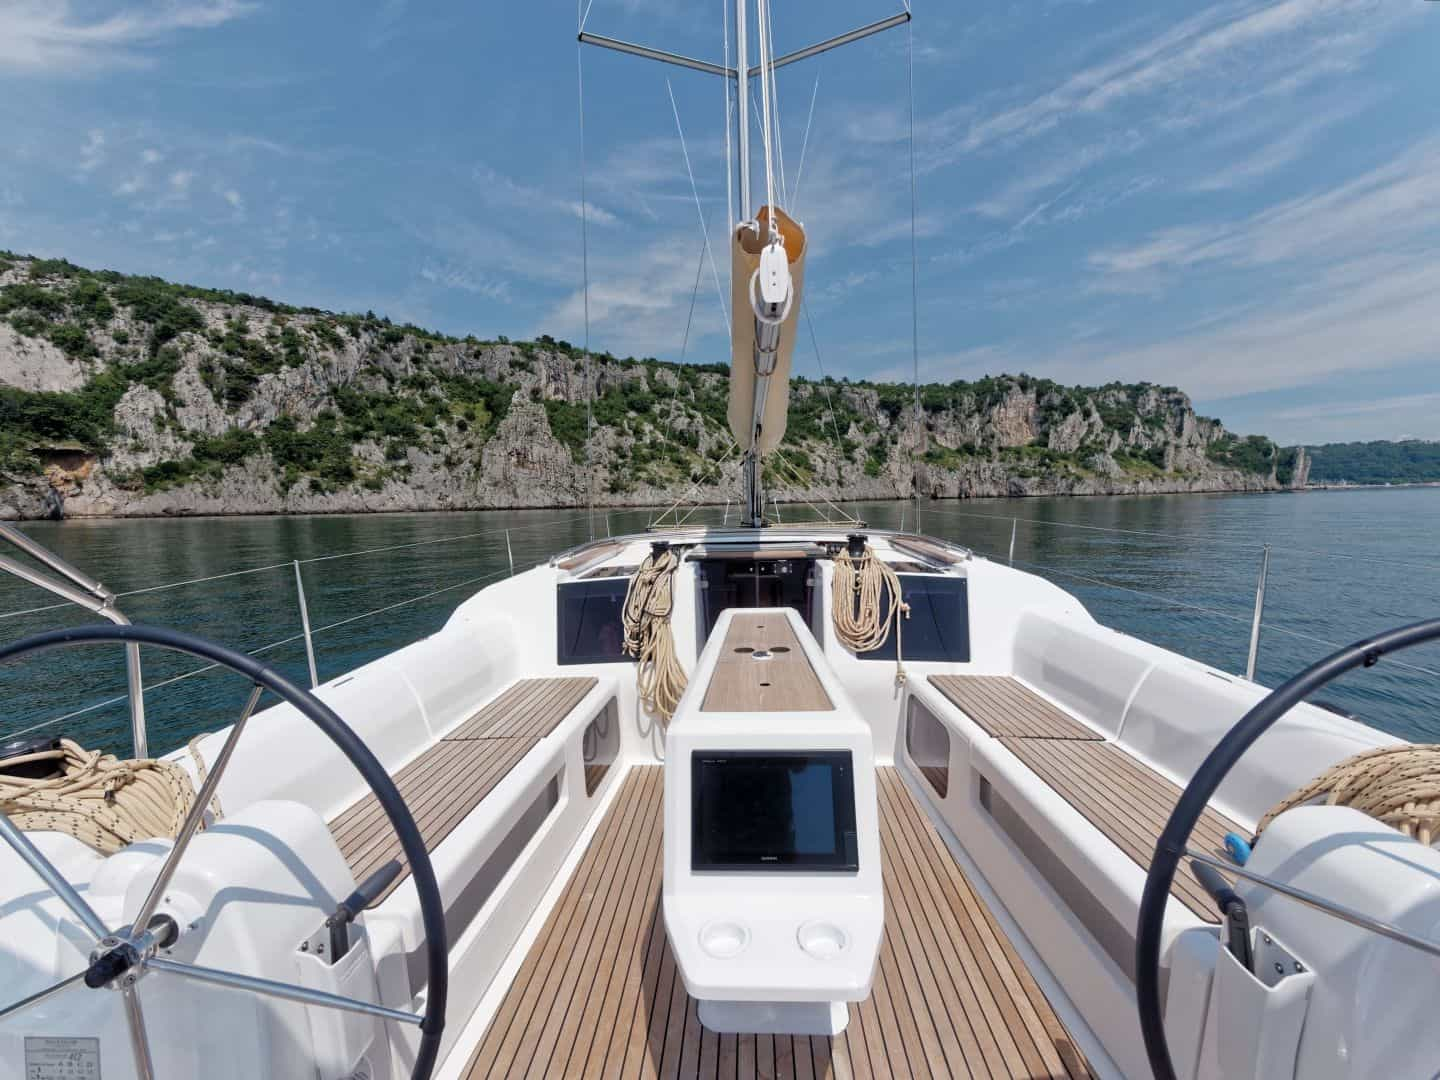 Deck of the Dufour grand large 412. The yacht is approaching beautiful cliffs on a sunny still day